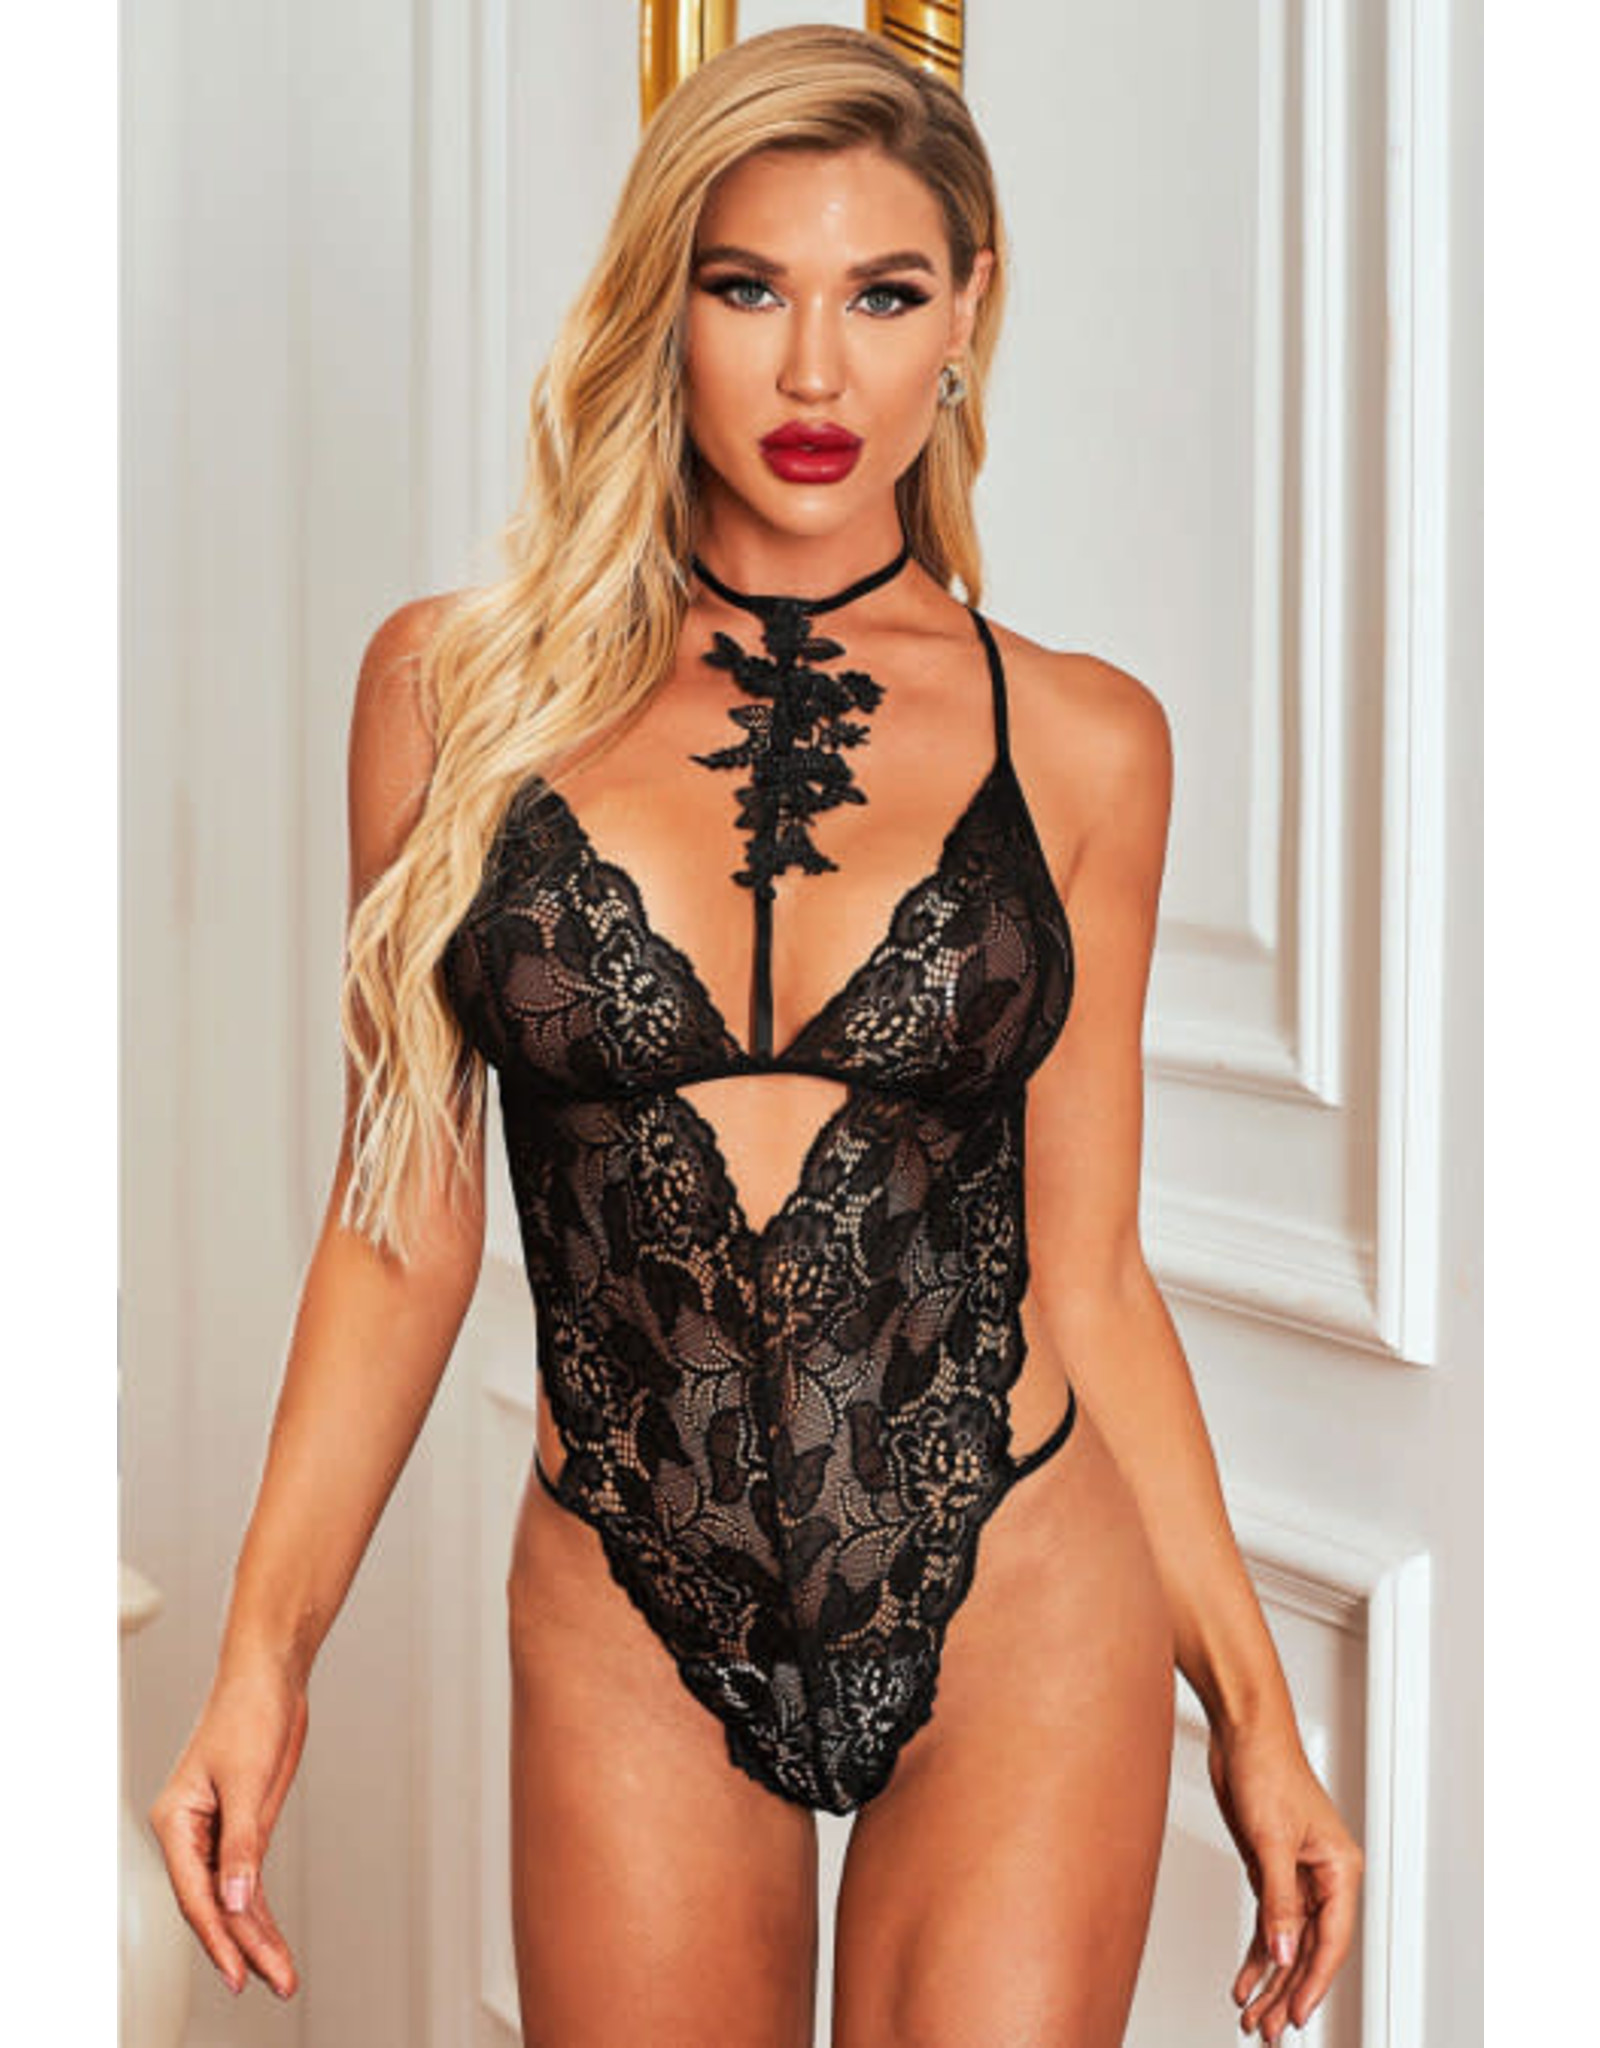 BLACK ROSES FALL LACE TEDDY - (US 12-14)L